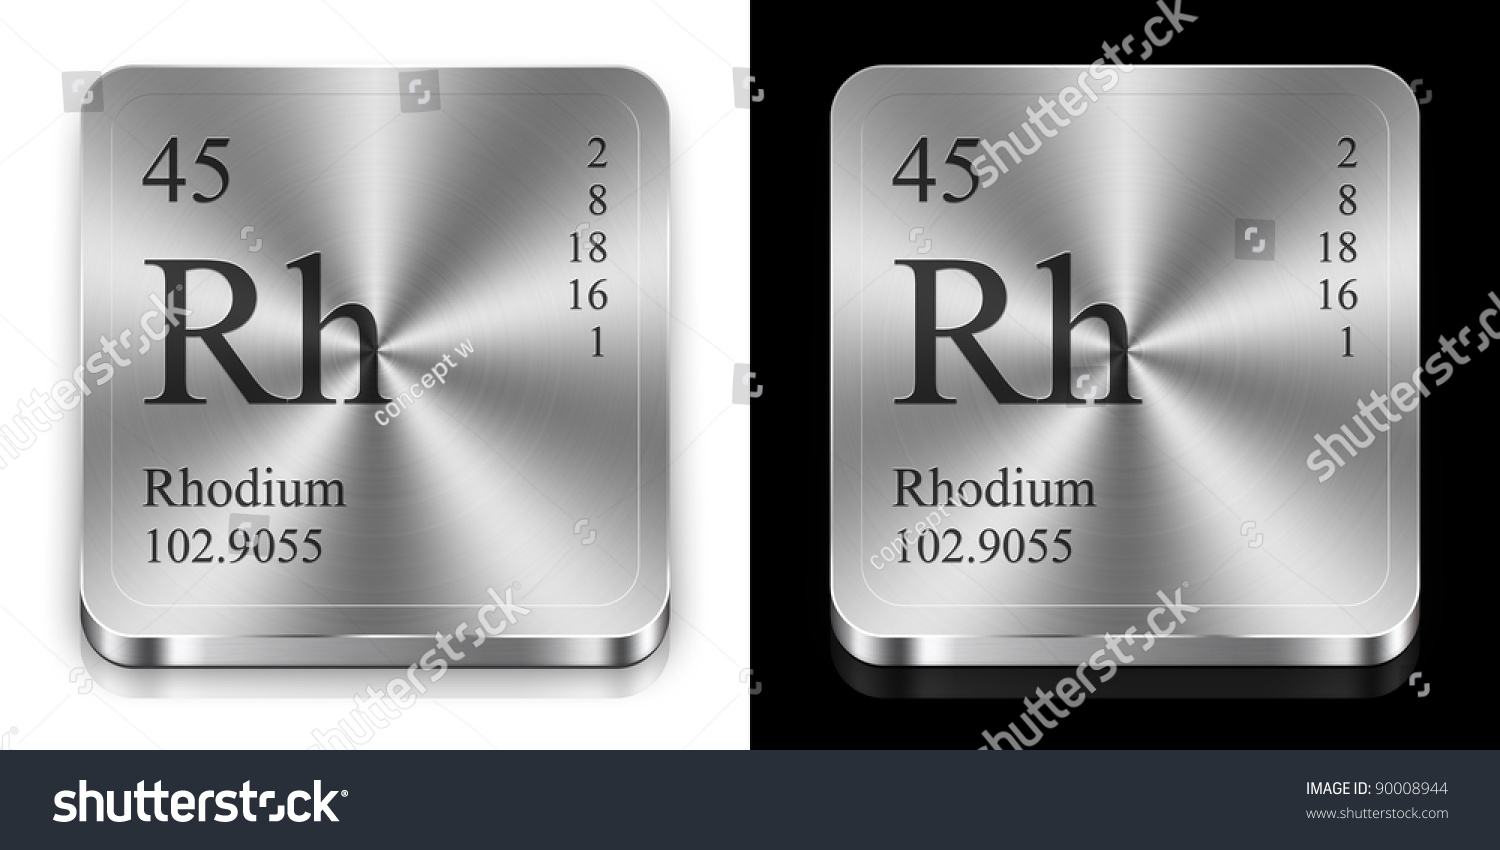 Rhodium element periodic table two steel stock illustration rhodium element of the periodic table two steel web buttons gamestrikefo Image collections